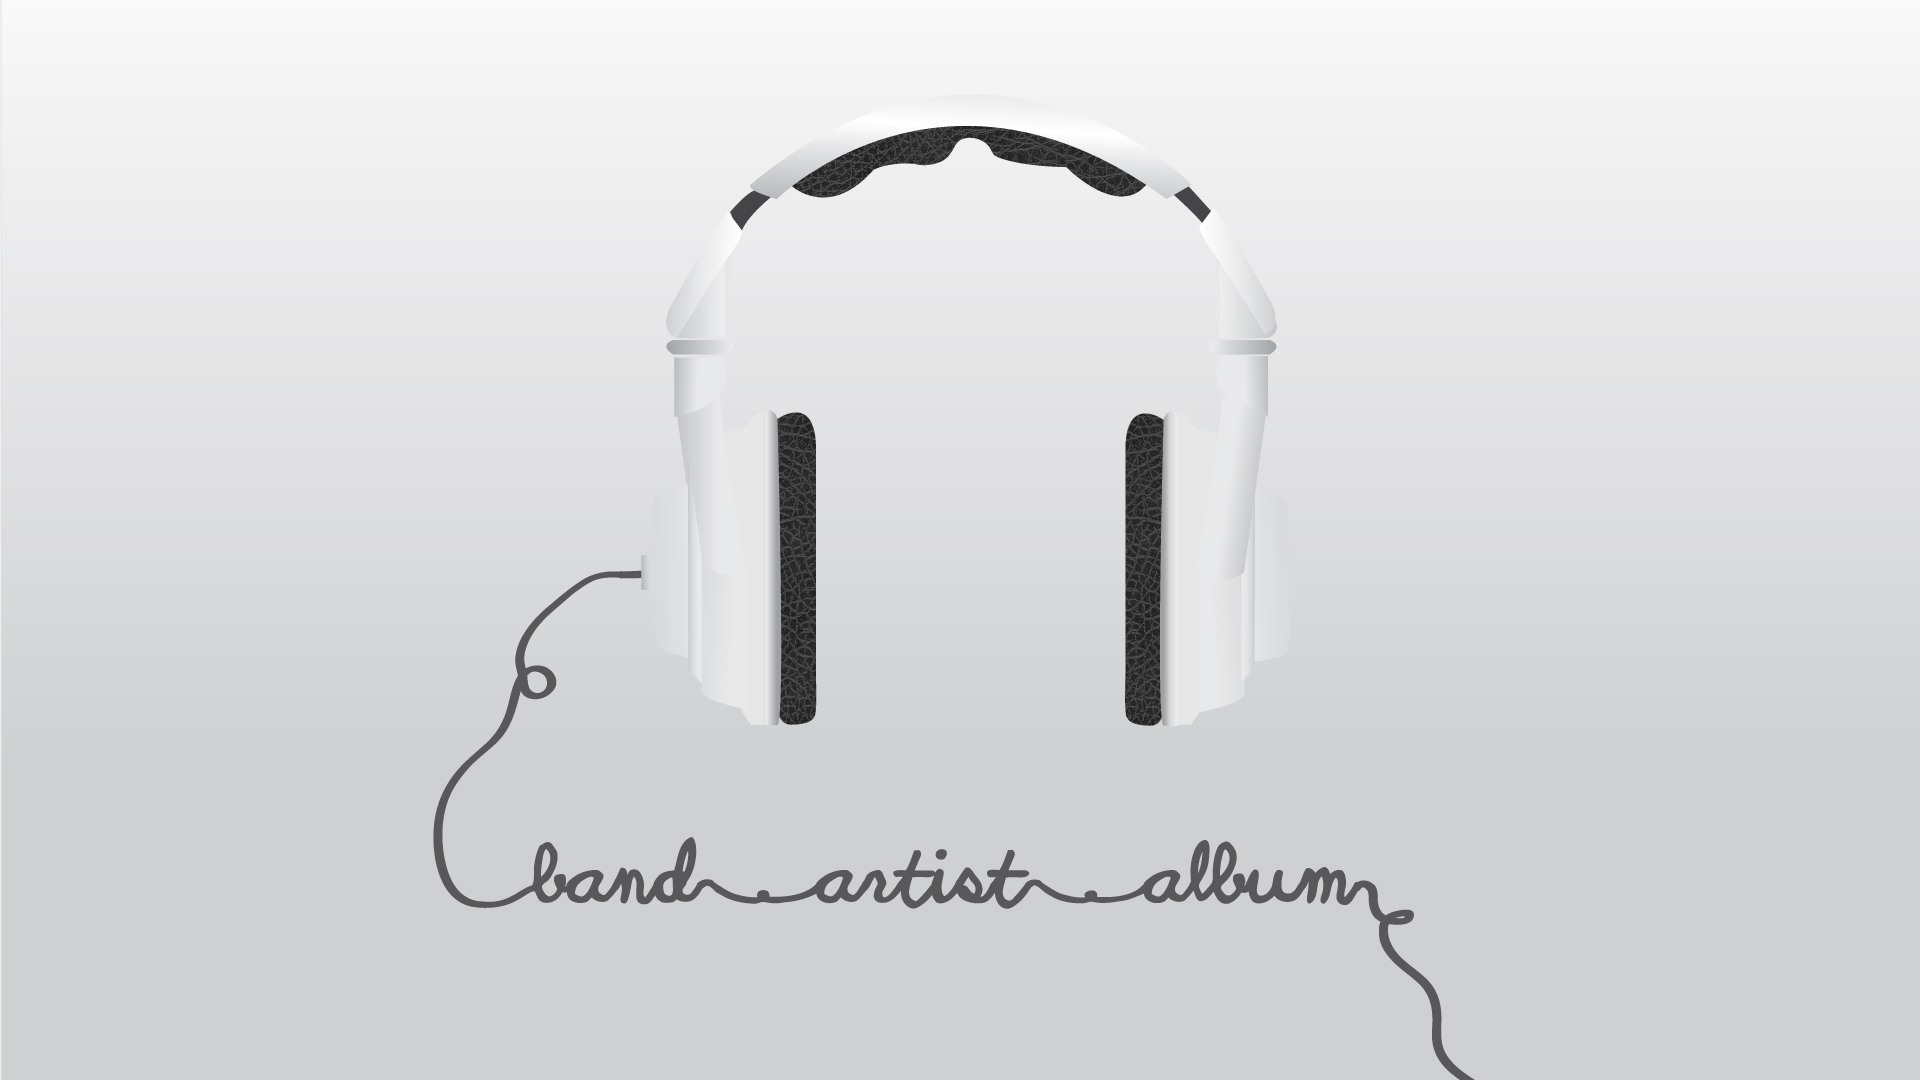 webpage illustration of headphones with the cord forming words.